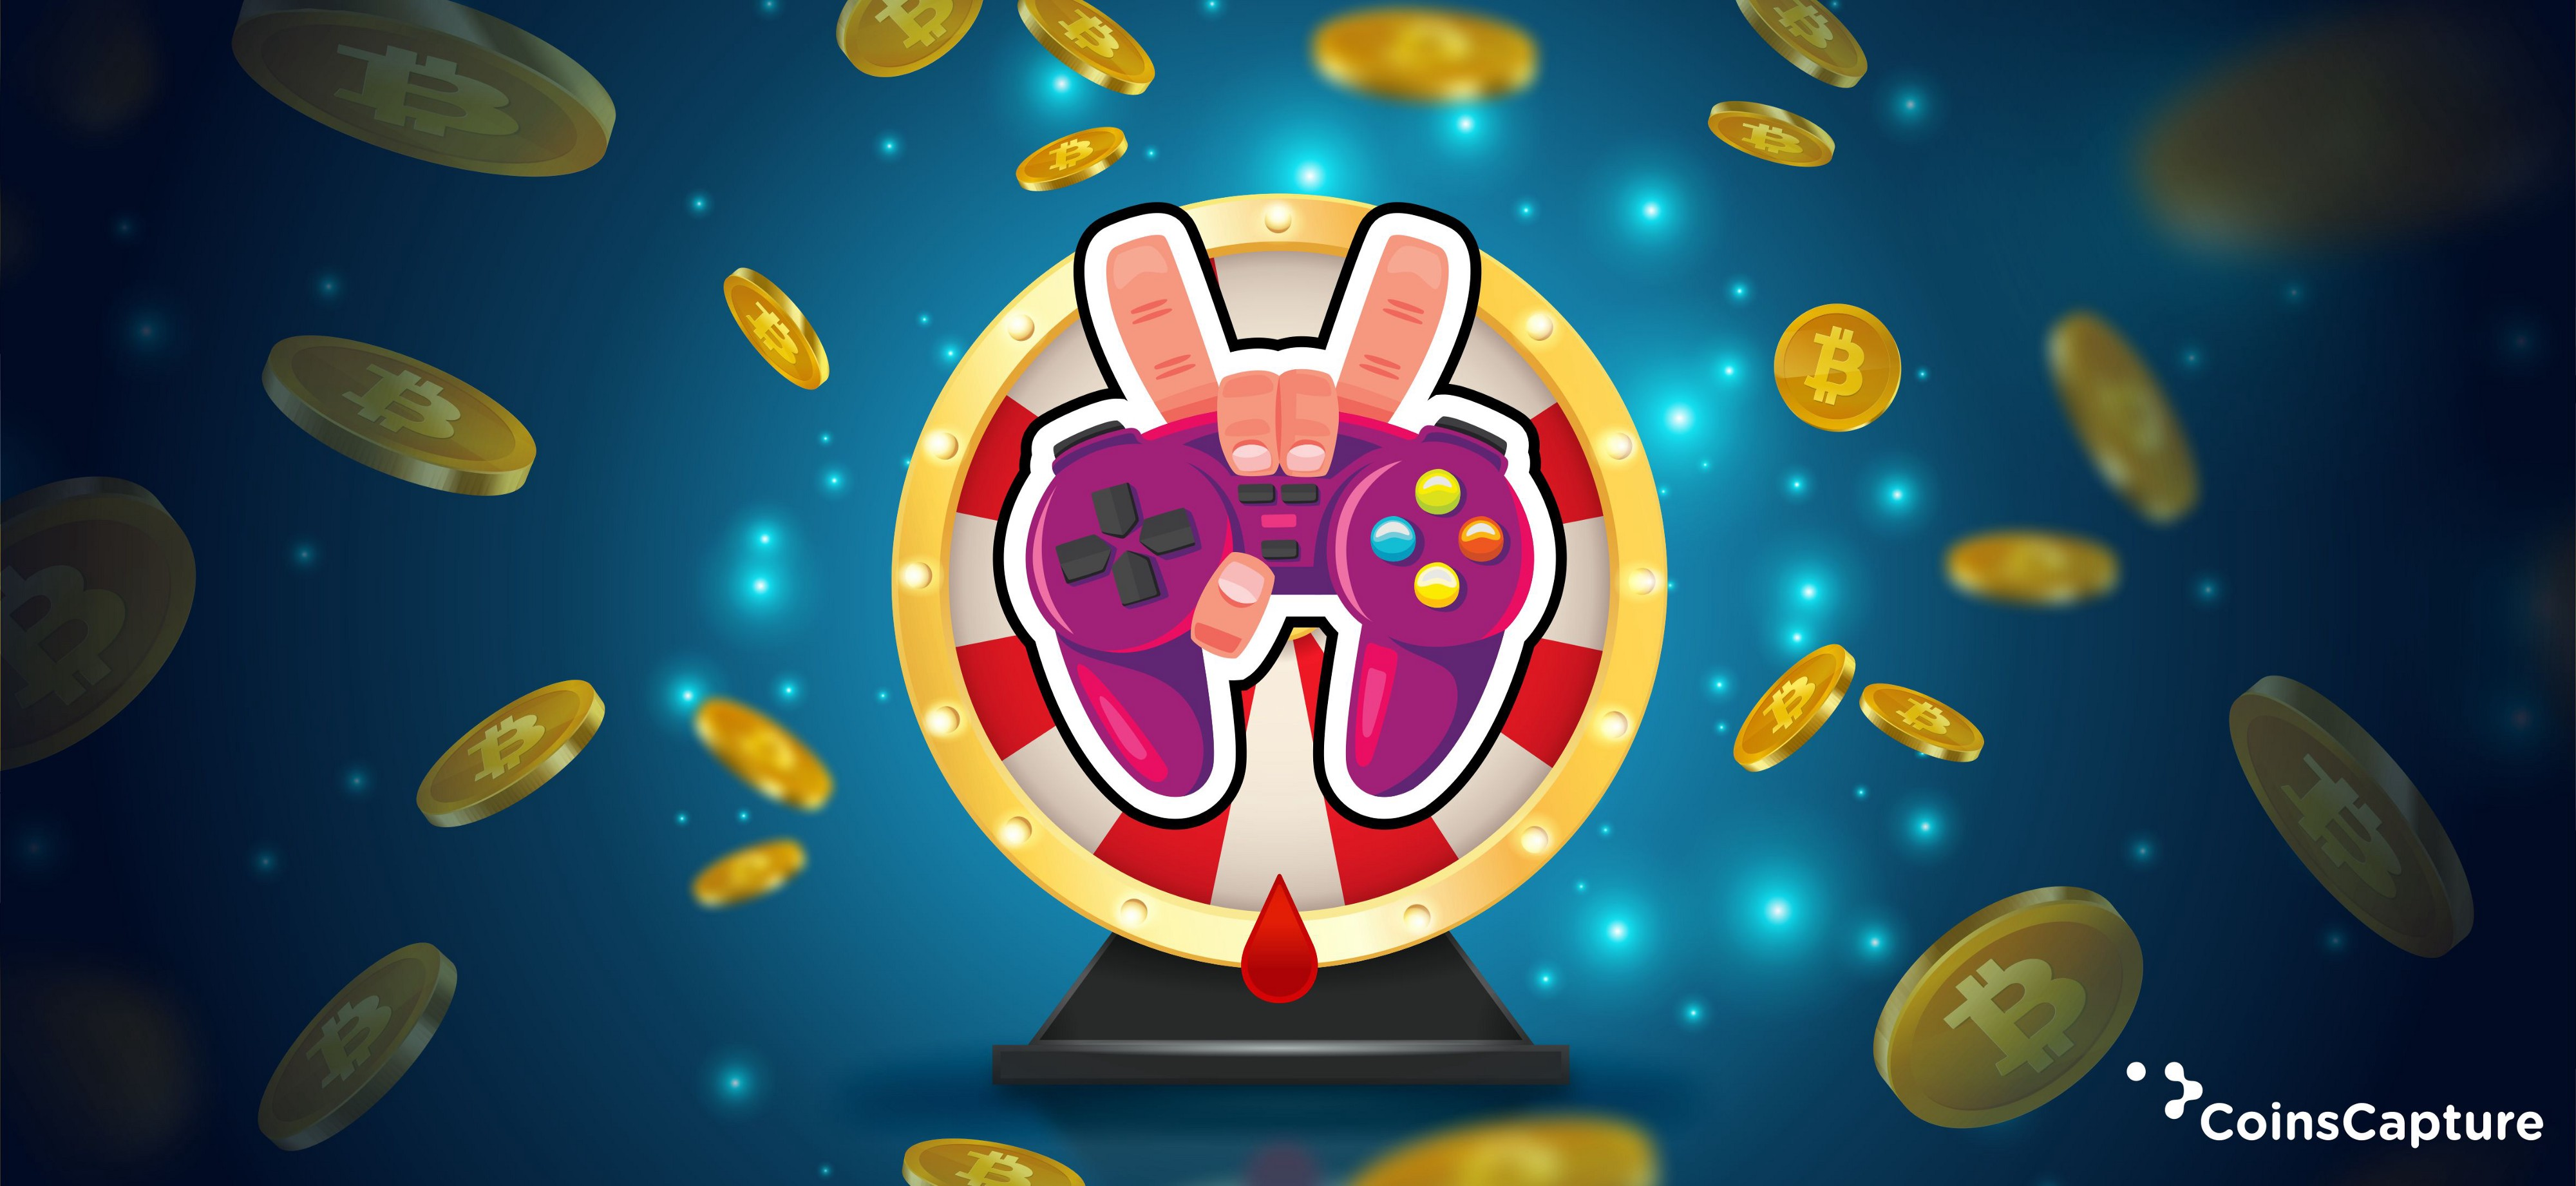 Popular Games to Earn Cryptocurrency